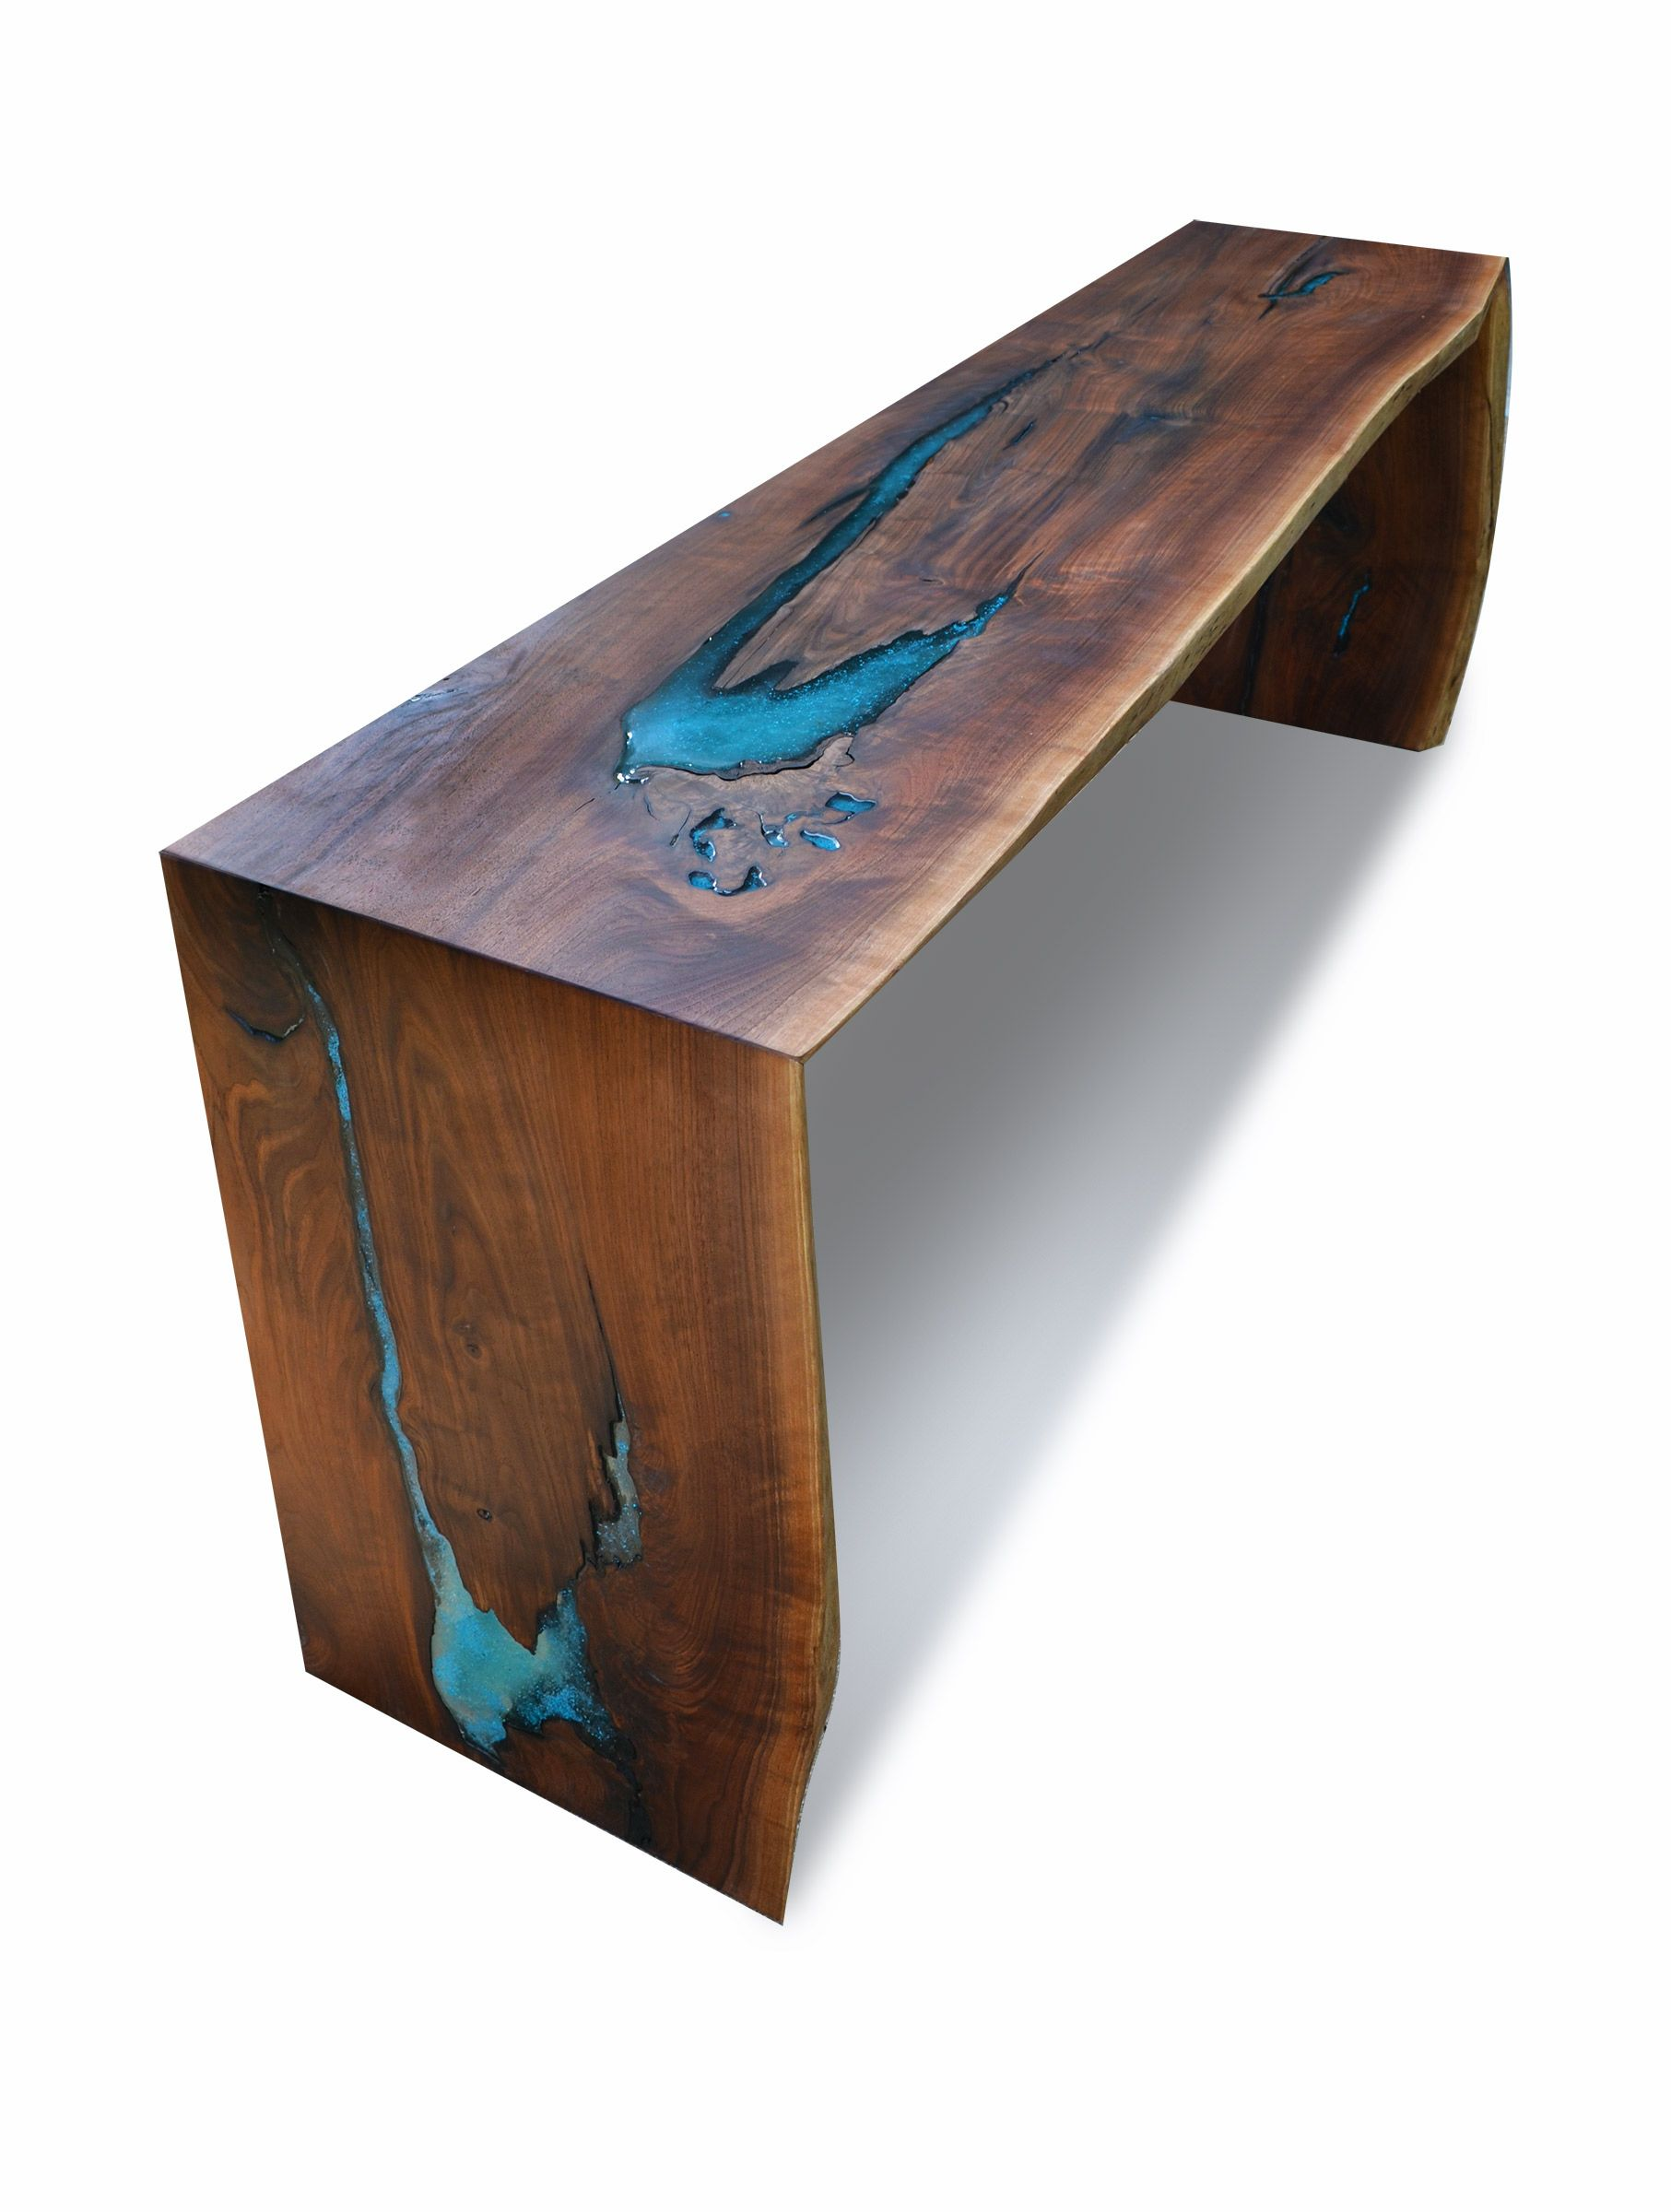 Custom Made Live Edge Walnut Epoxy Resin Turquoise Inlay Dining Console b2805dd4b